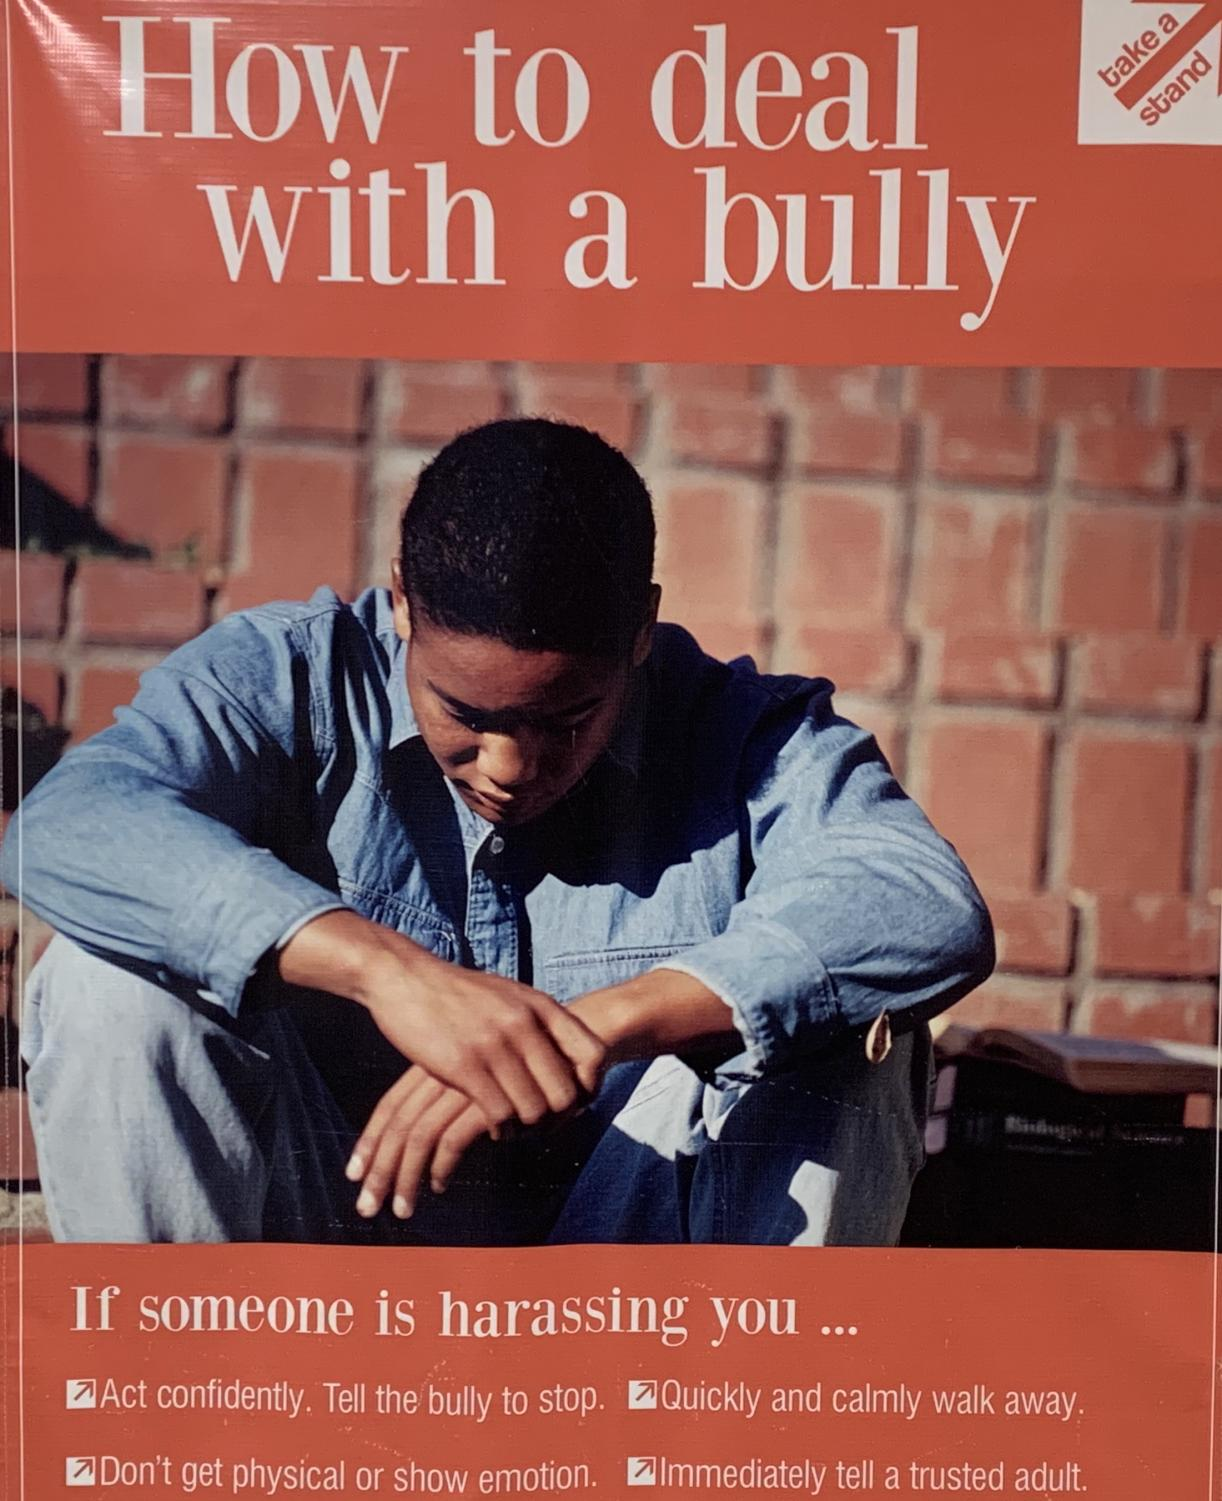 In the halls of PMHS to social media, bullying is becoming harder to control & manage to protect children.